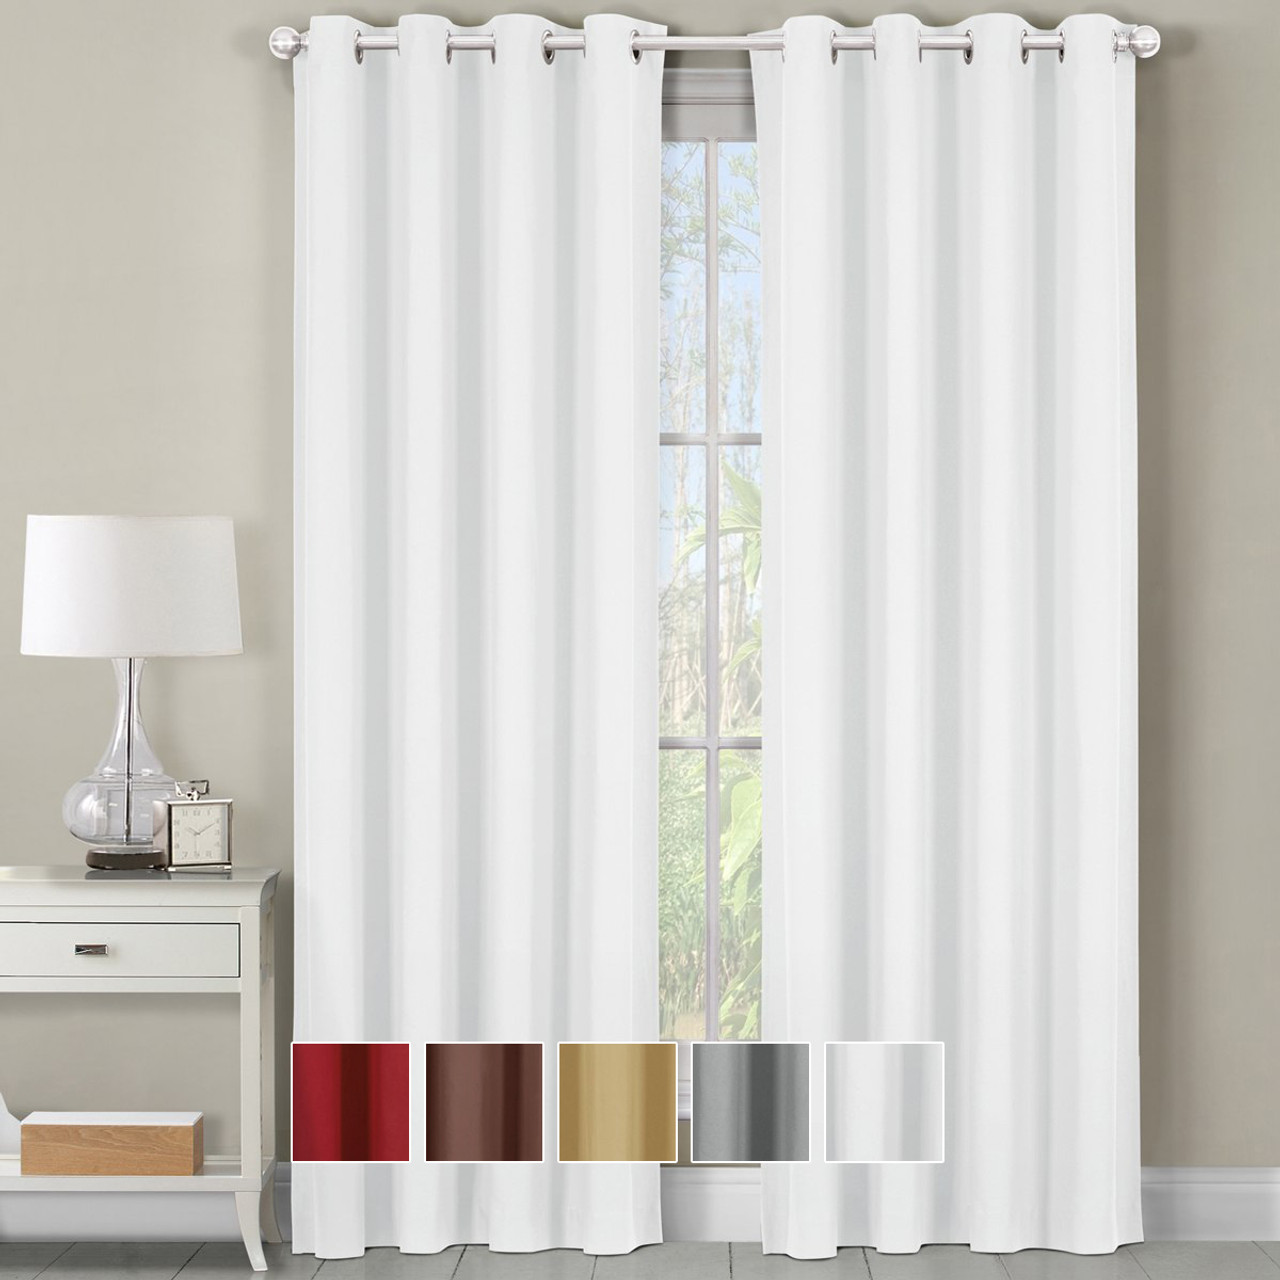 Luxor Heavyweight %100 Cotton Room-Darkening Grommet Curtains